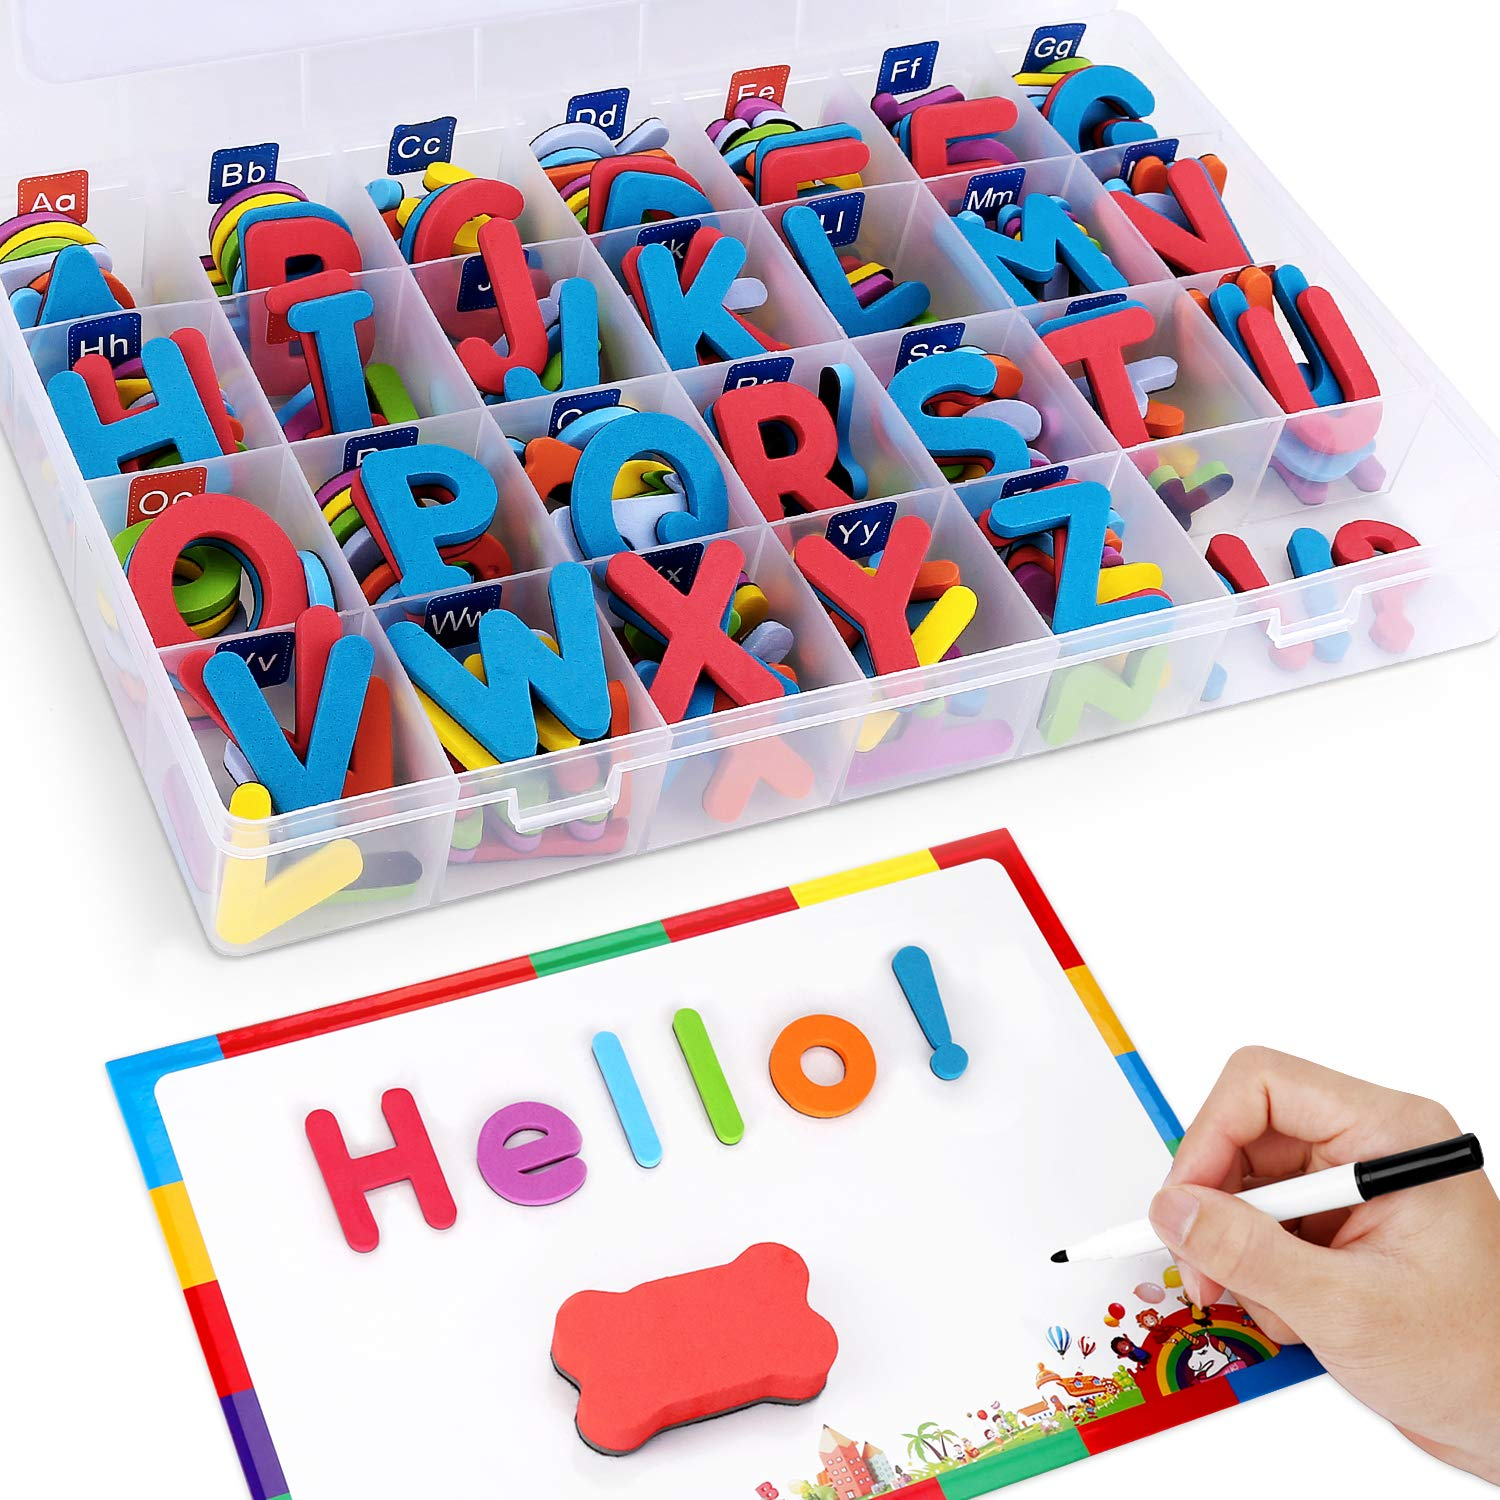 Magnetic Letters With Writing Board And Storage Box - 208 Pieces Uppercase Lowercase Foam Fridge Alphabet Magnets Learning Toy